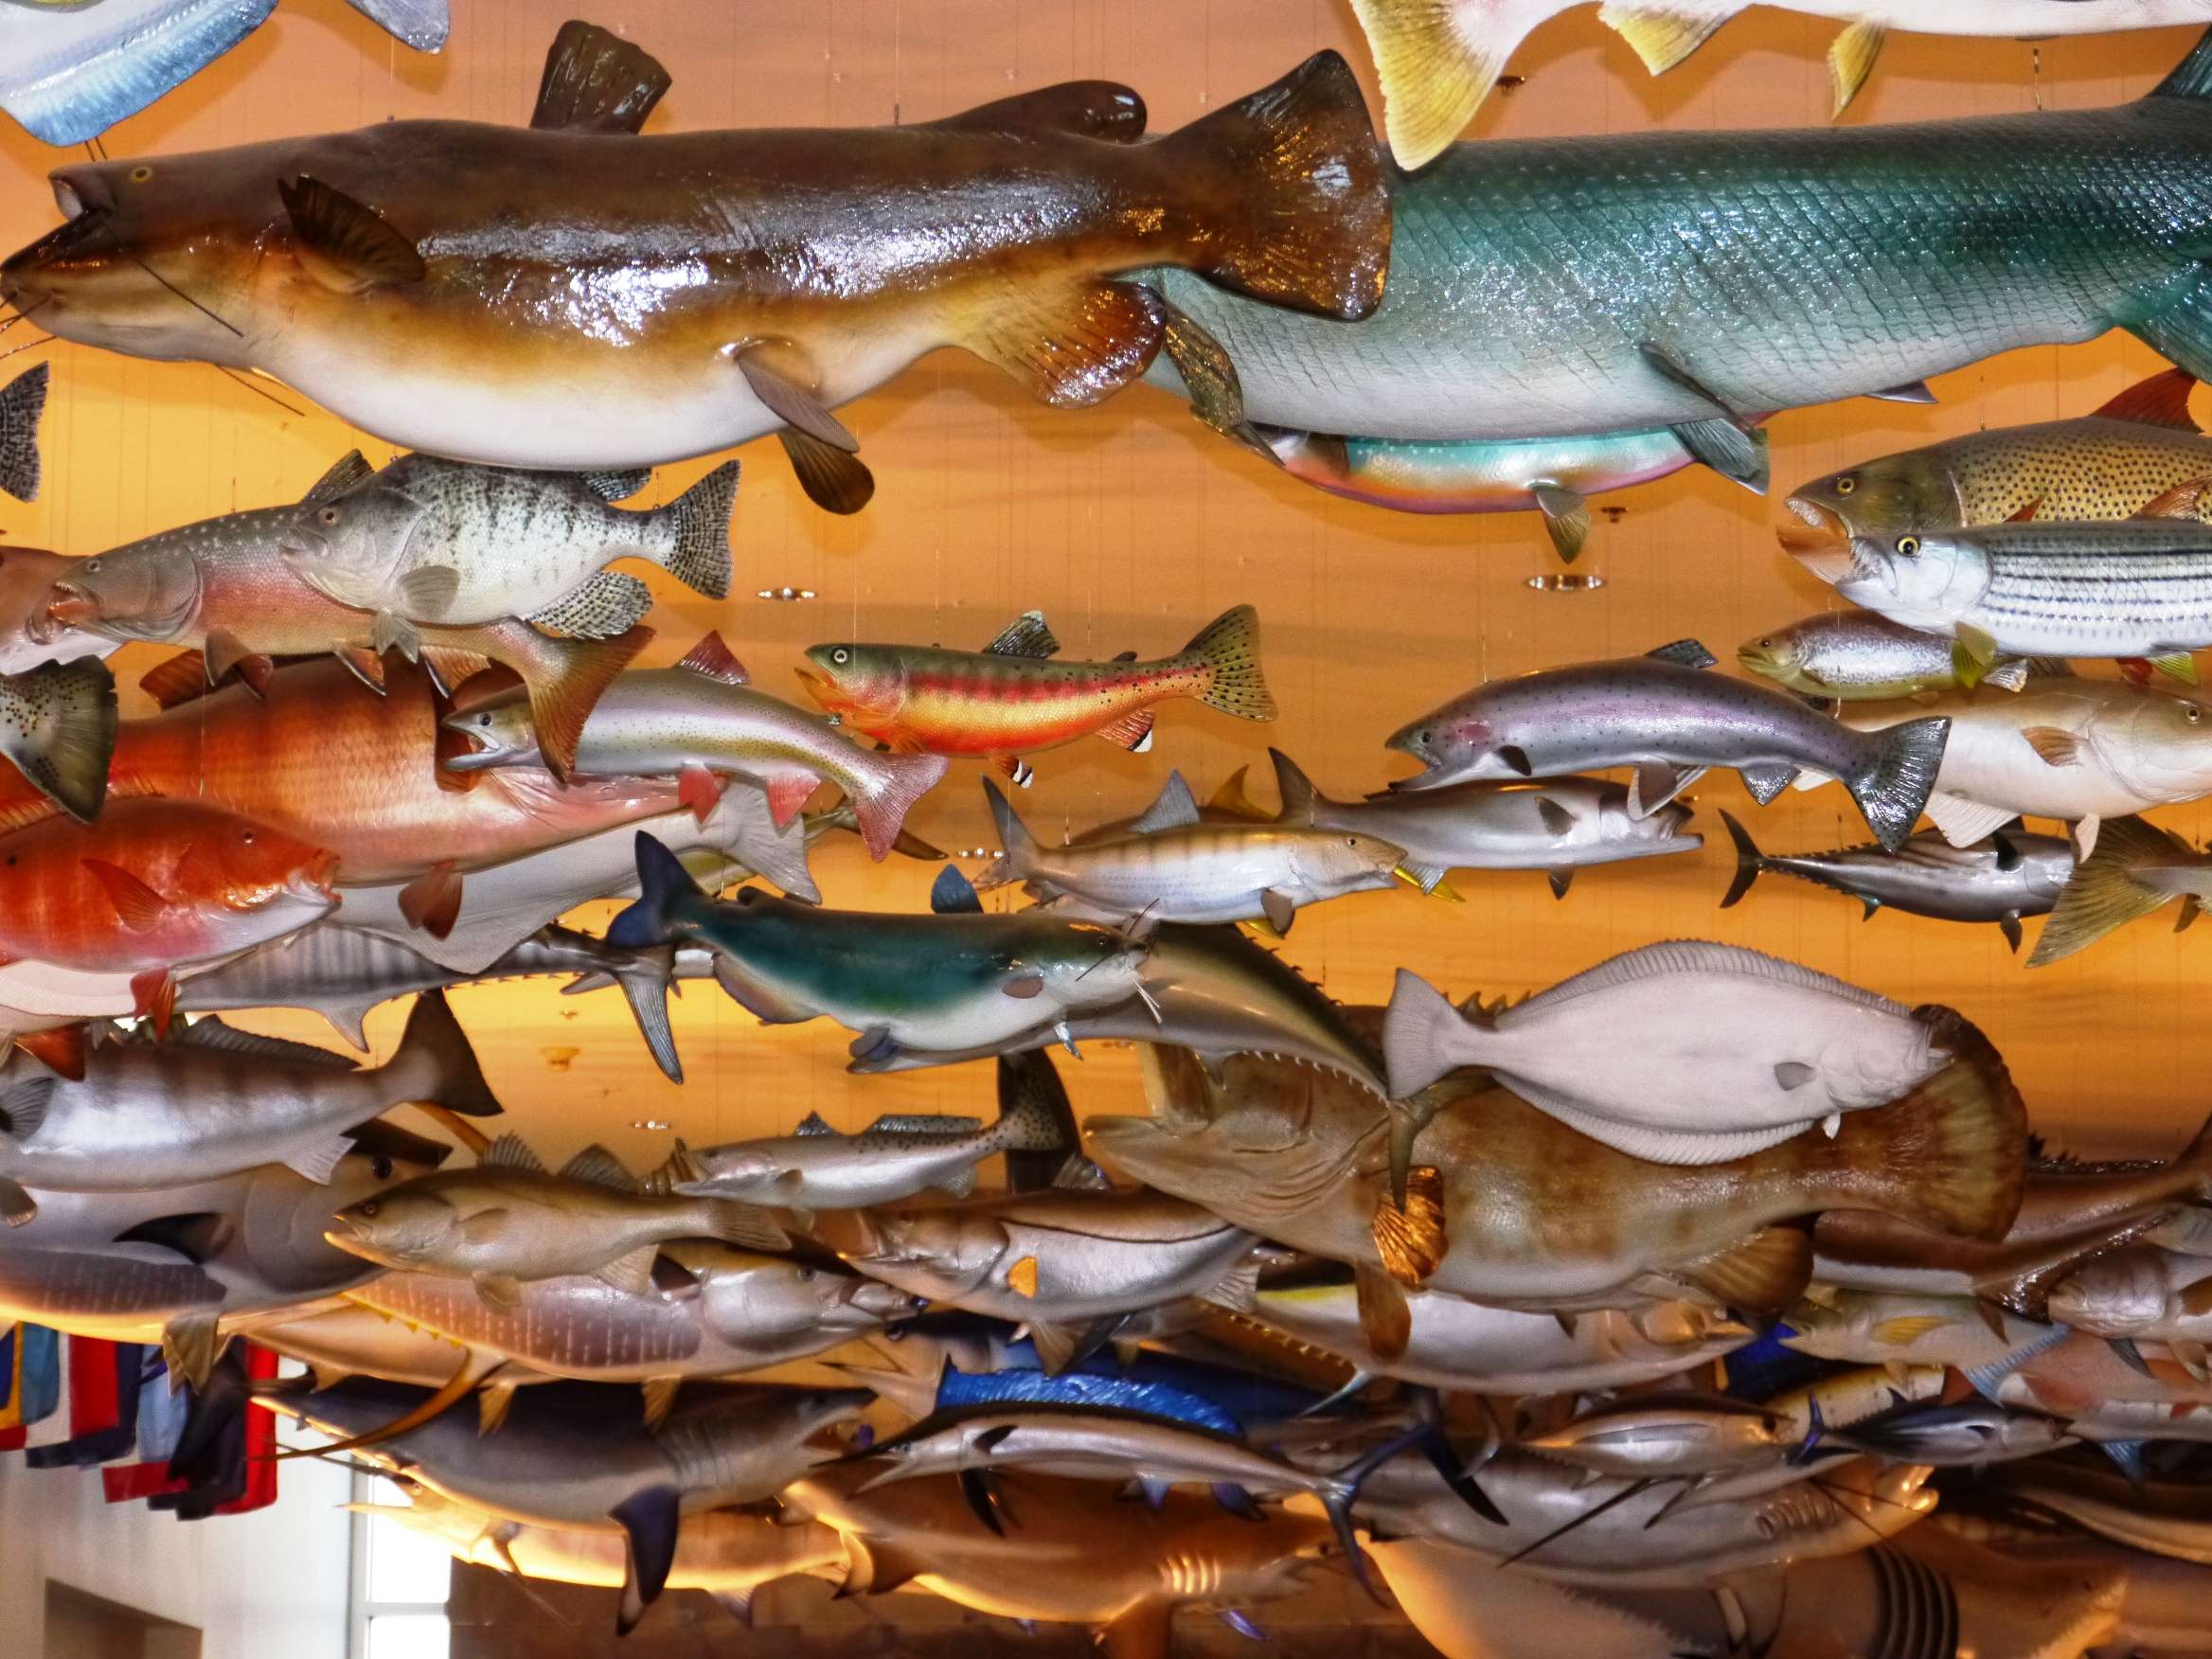 Fishing Hall of Fame Museum in Dania Beach